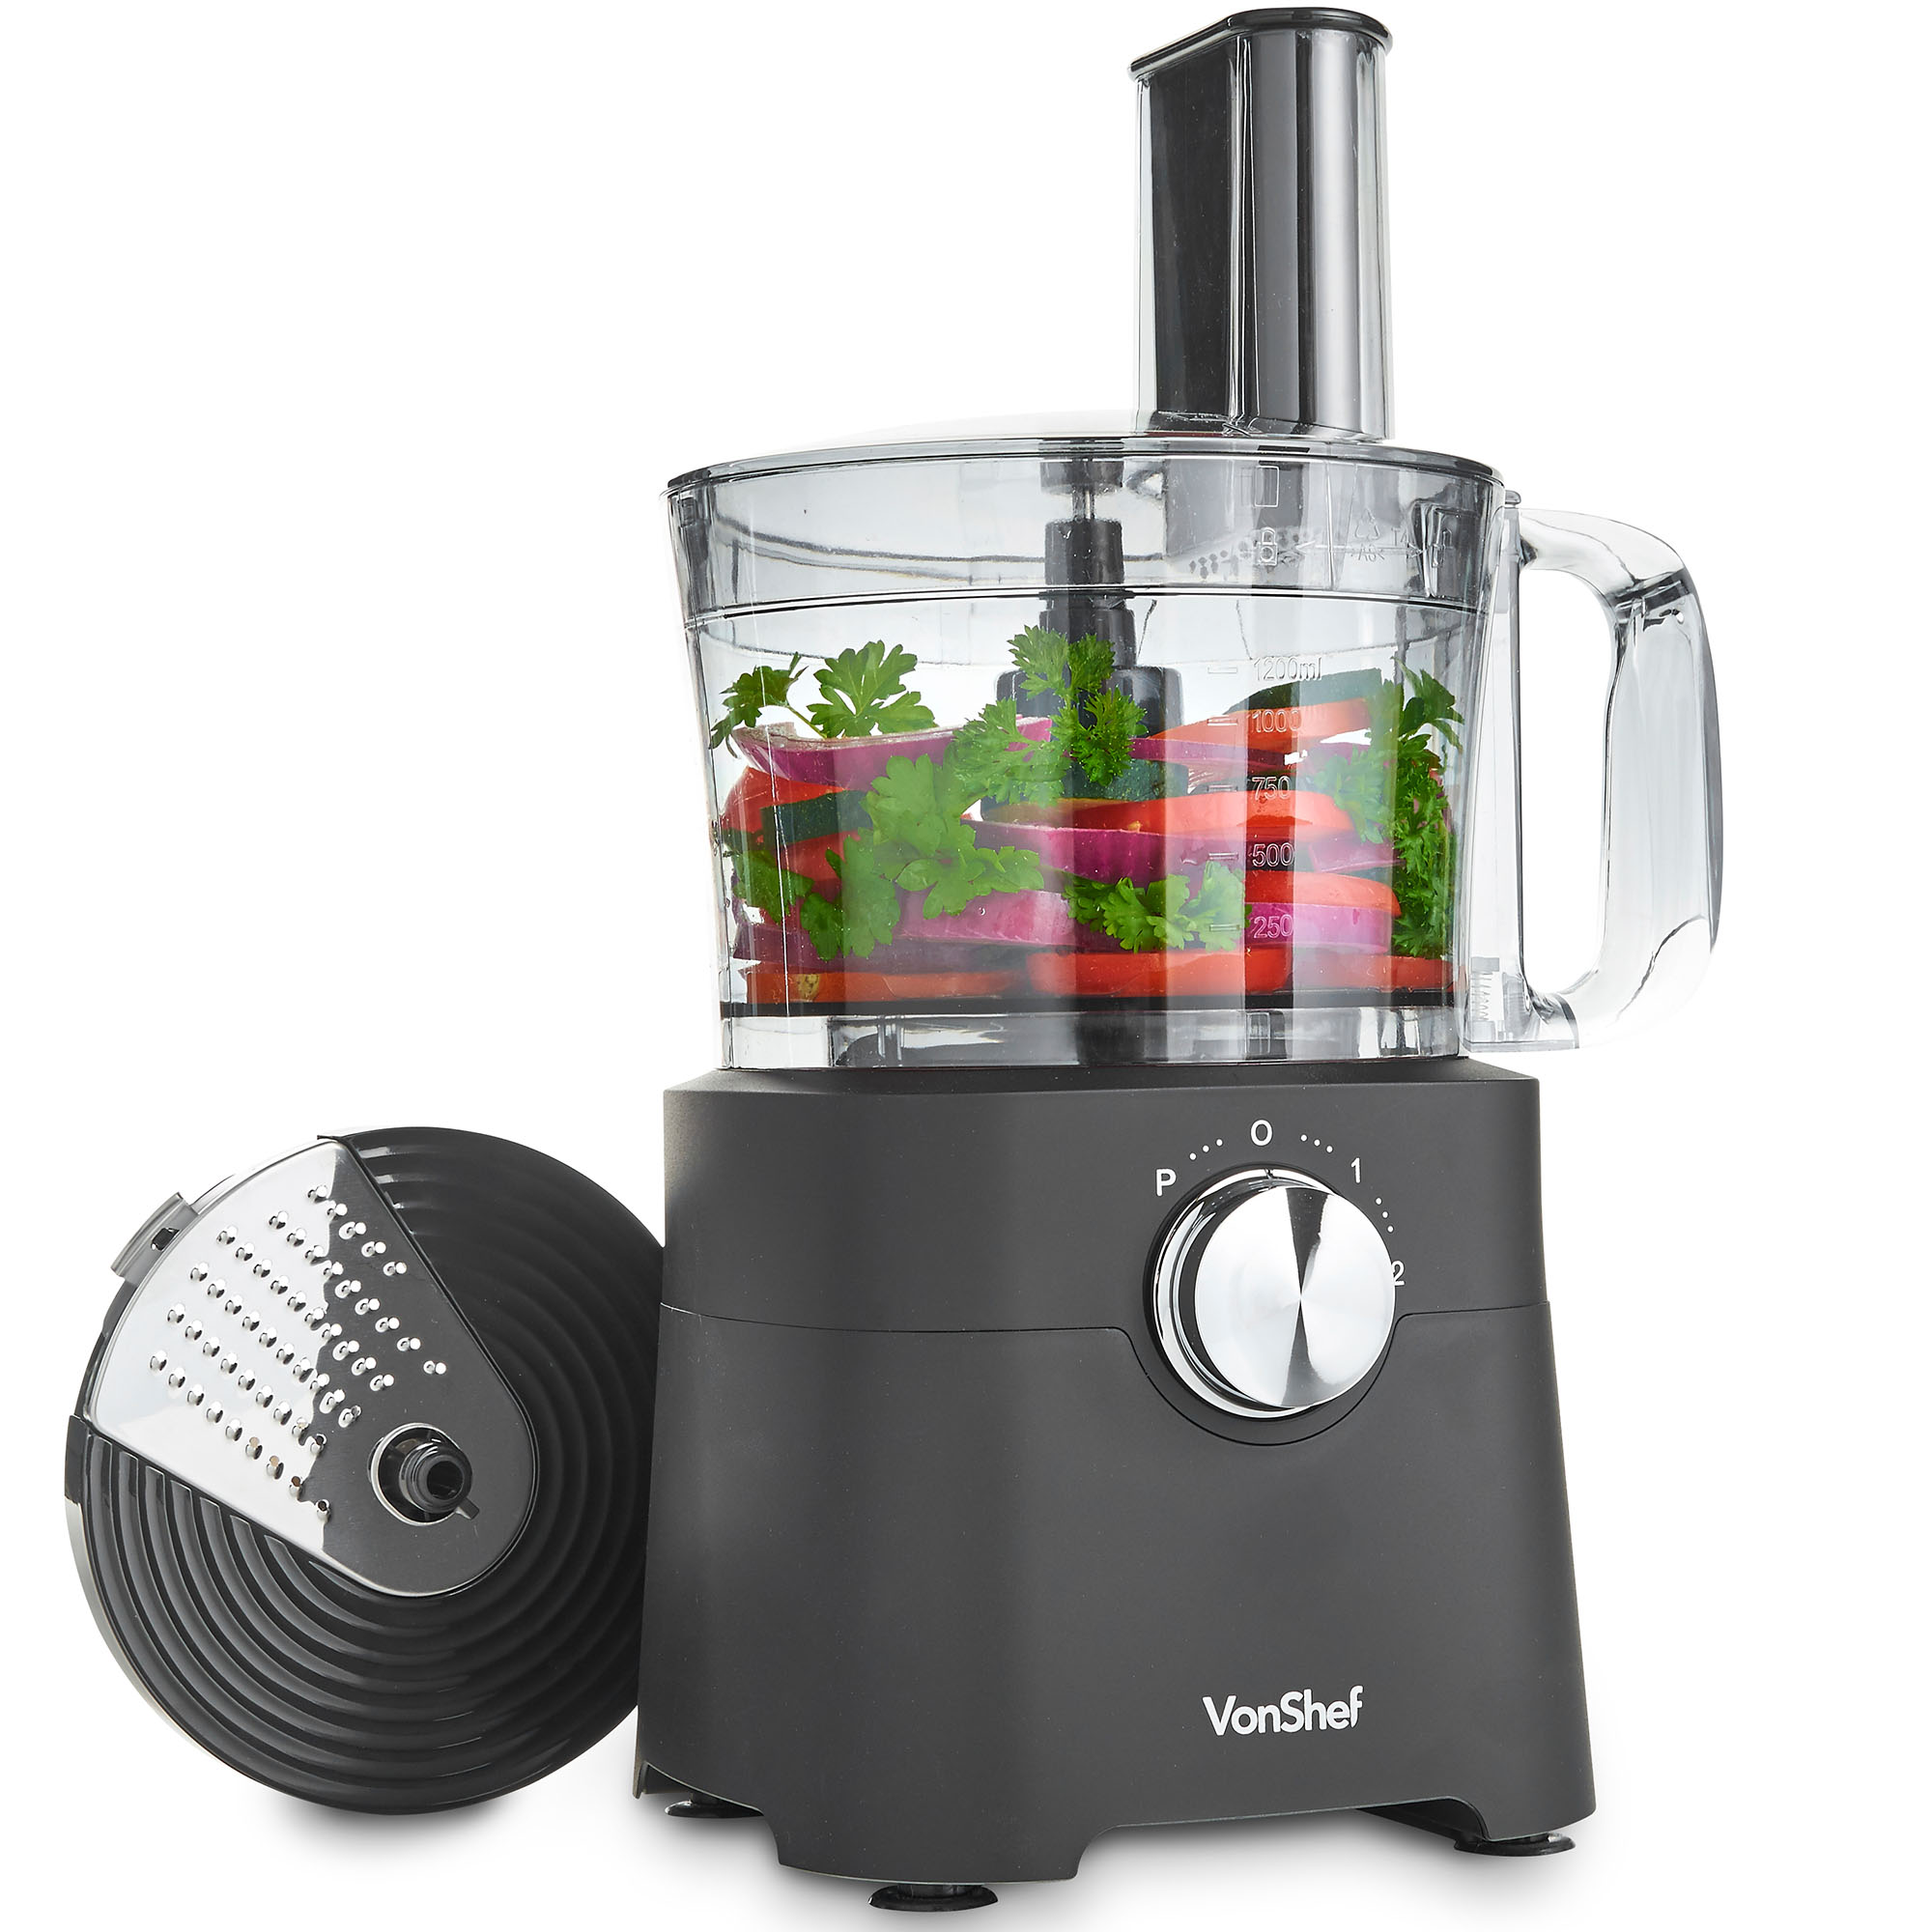 blender and food processor combo. Sentinel VonShef 8 Cup Food Processor \u2013 Blender, Chopper, Multi Mixer Combo 500W - Black Blender And R